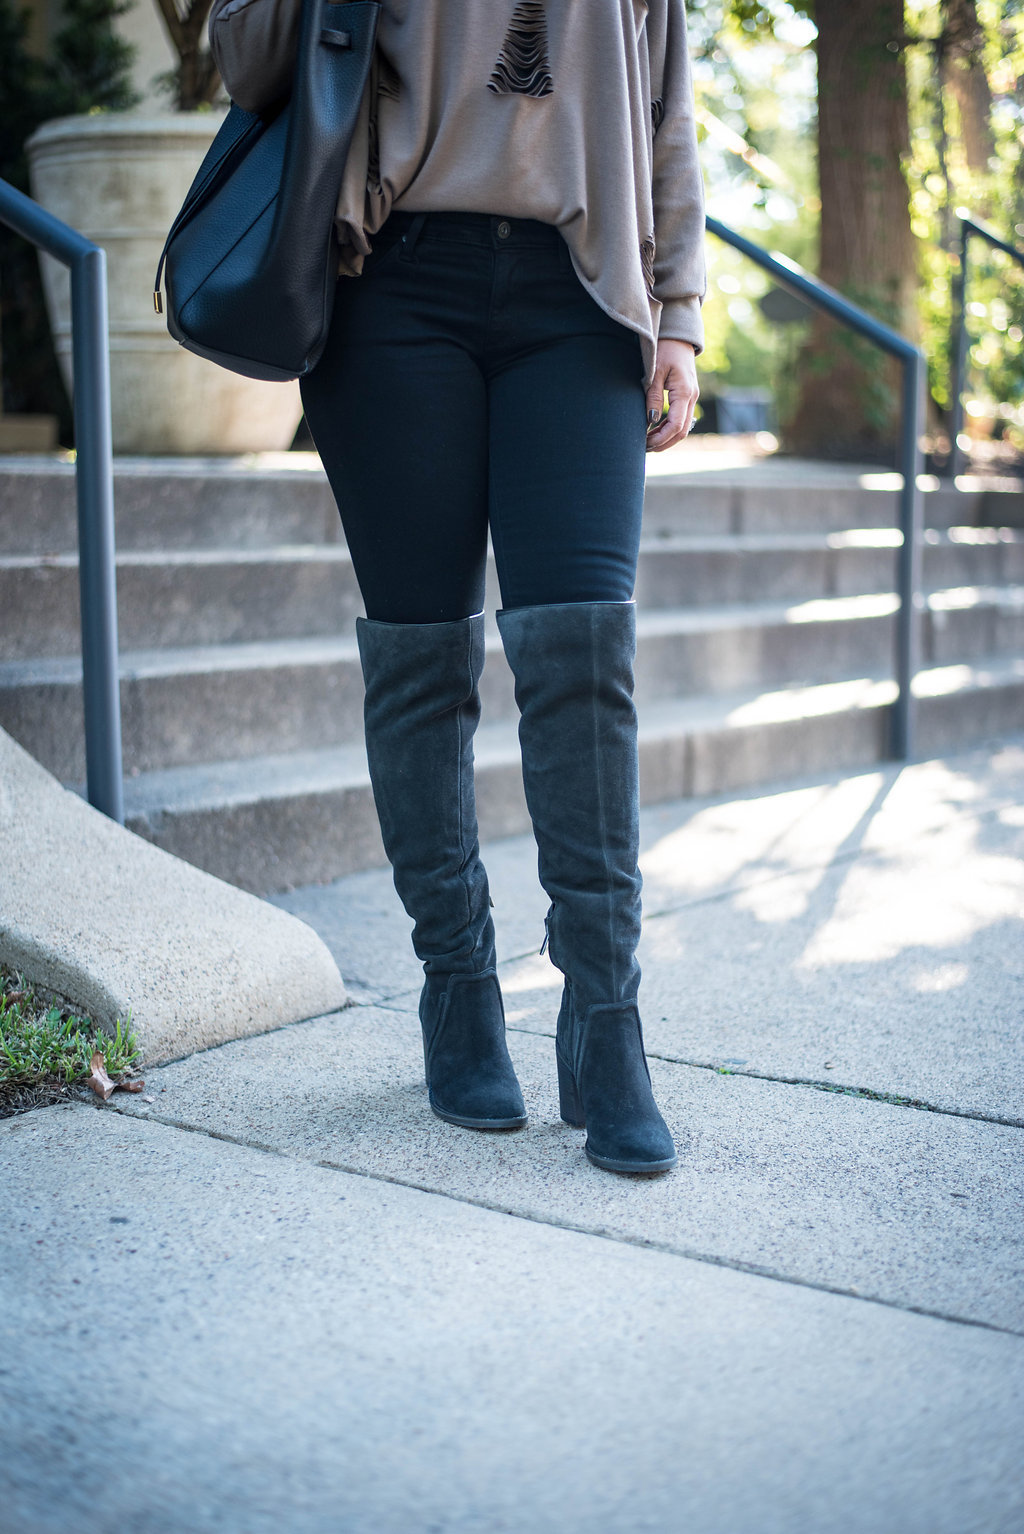 OTK boots| Fall Fashion